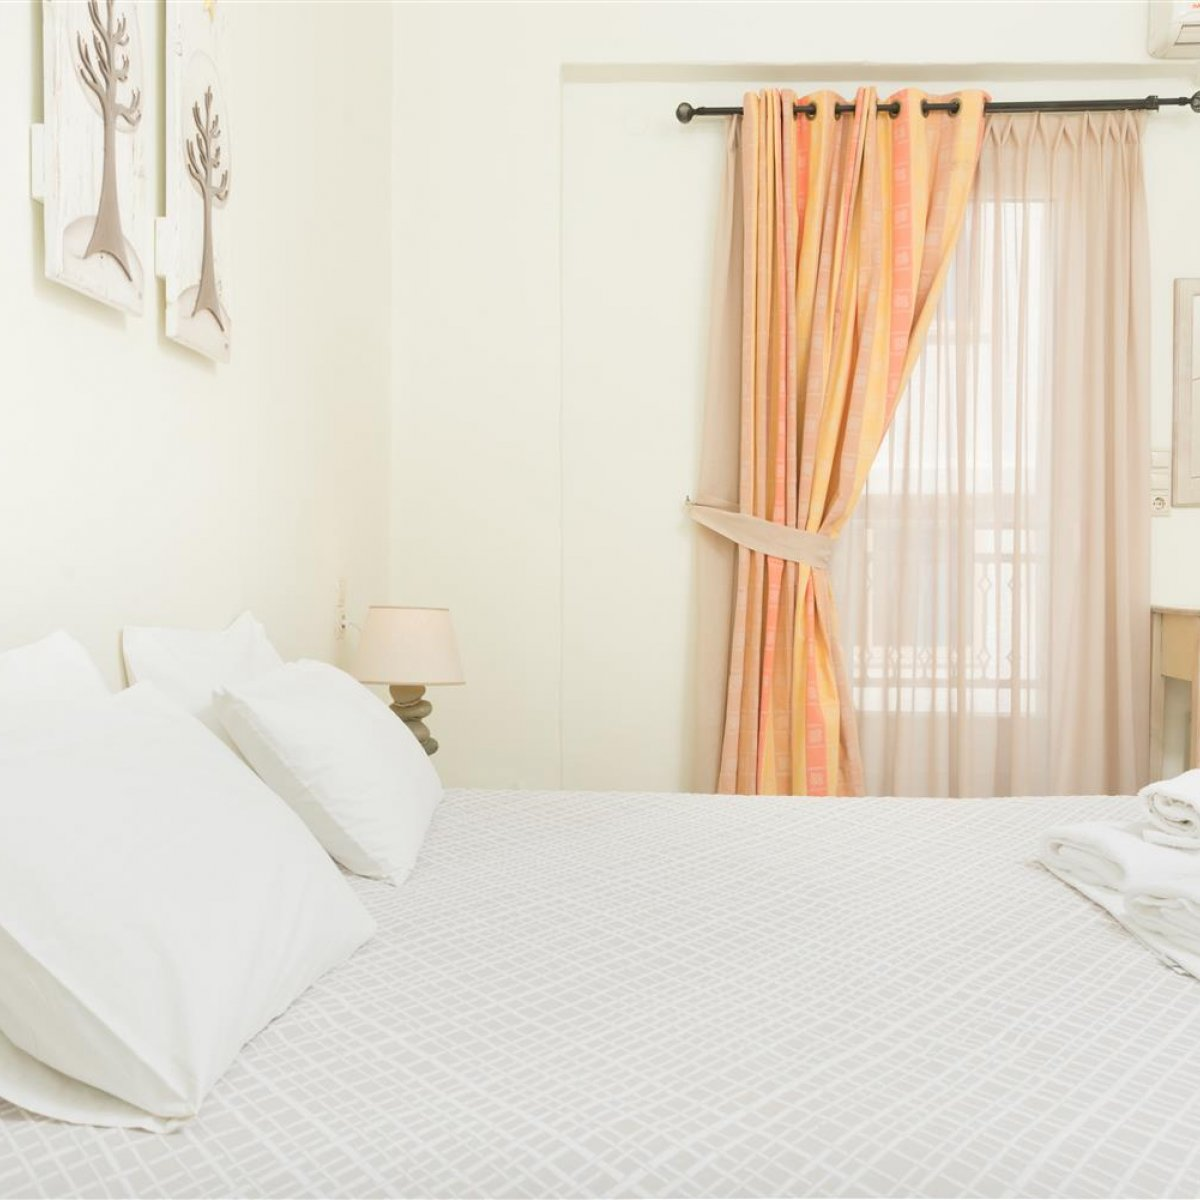 Hotel Sunshine Matala - 2 Bedrooms Family suite Eros